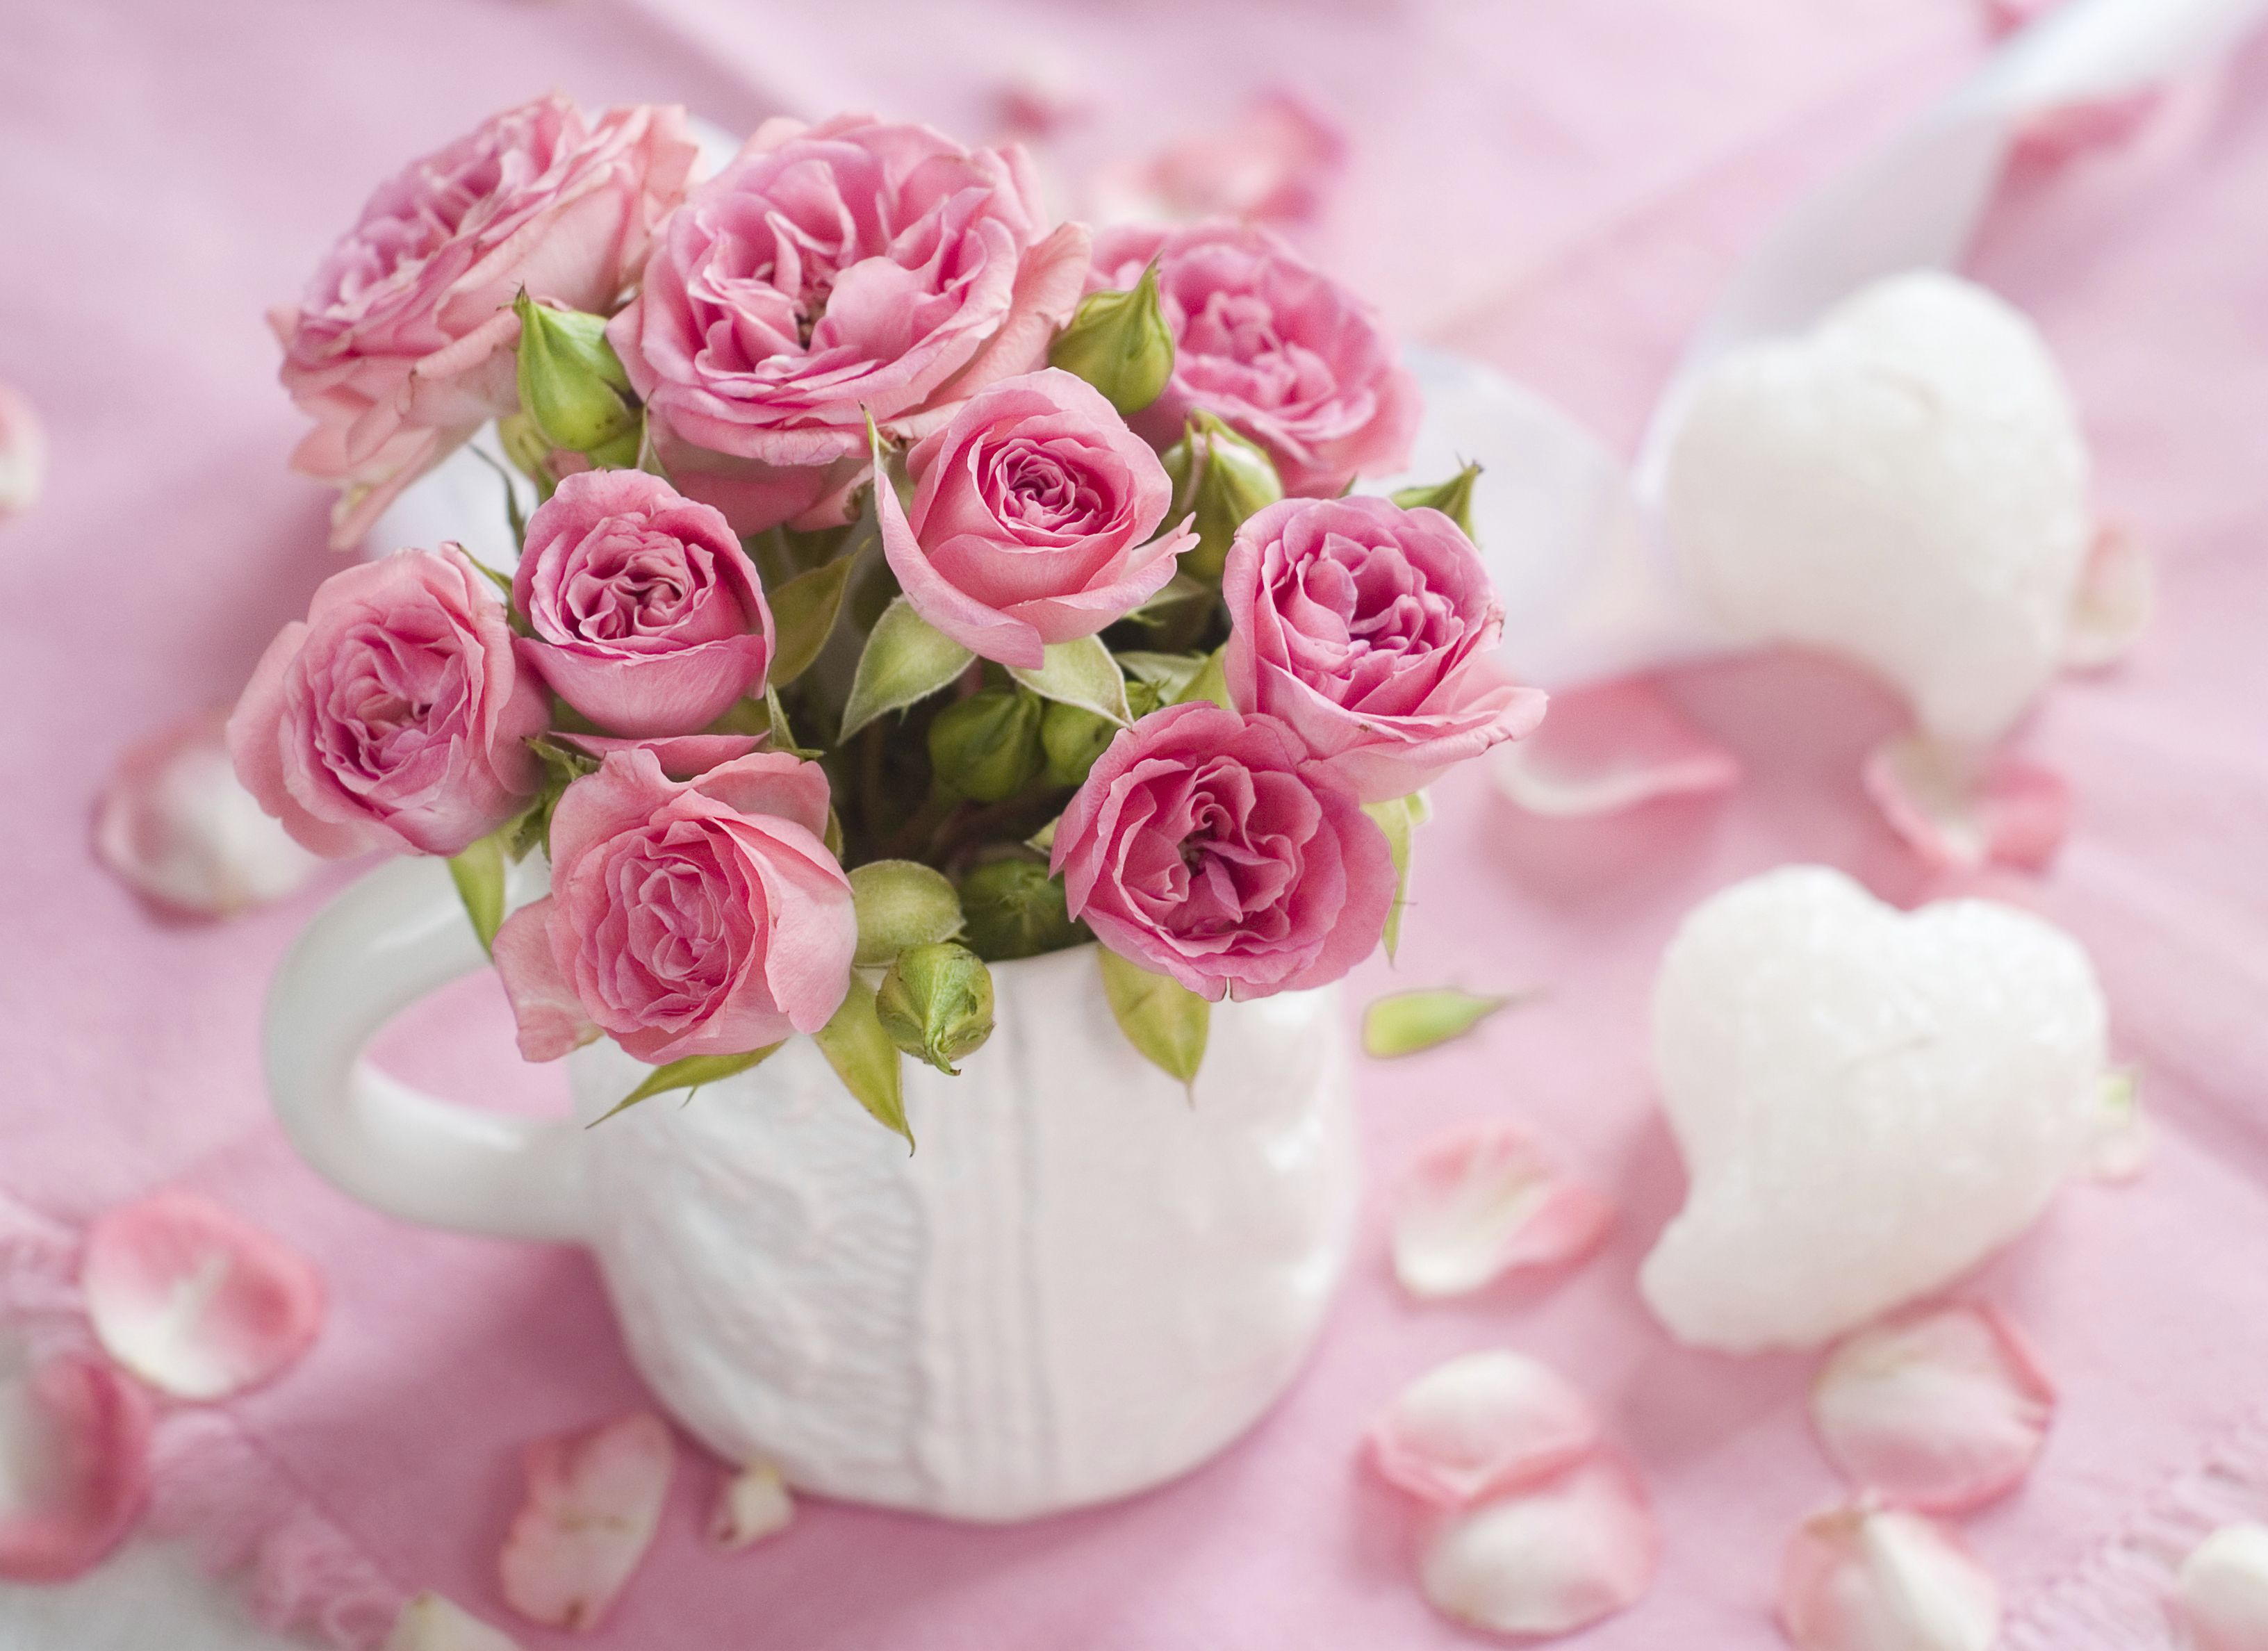 Saint Valentine's Day is approaching, and if you're still wondering how to surprise your sweetheart this year, get inspired!